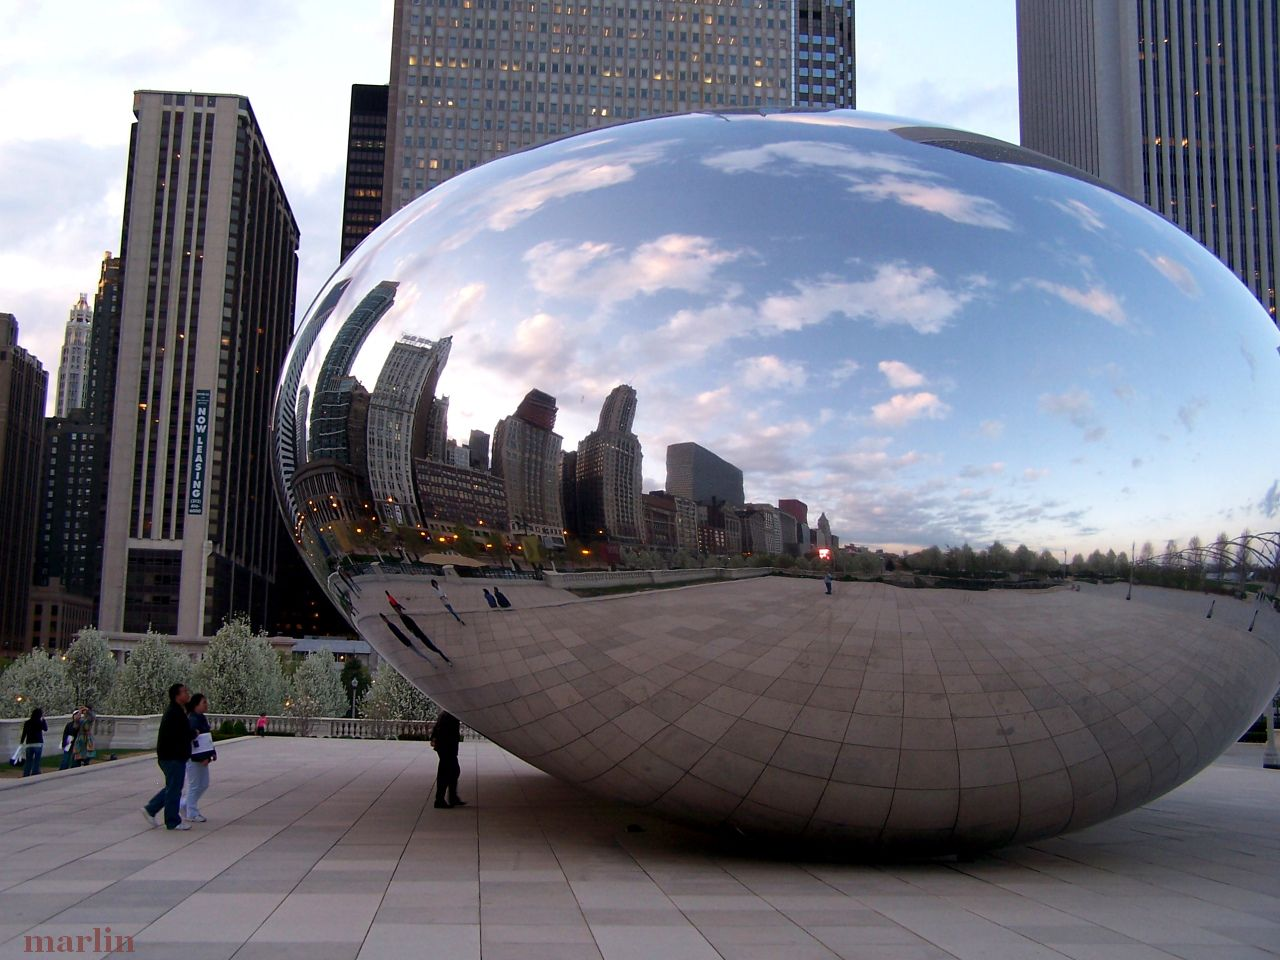 Cloud Gate (The Bean) Sculpture at Millennium Park